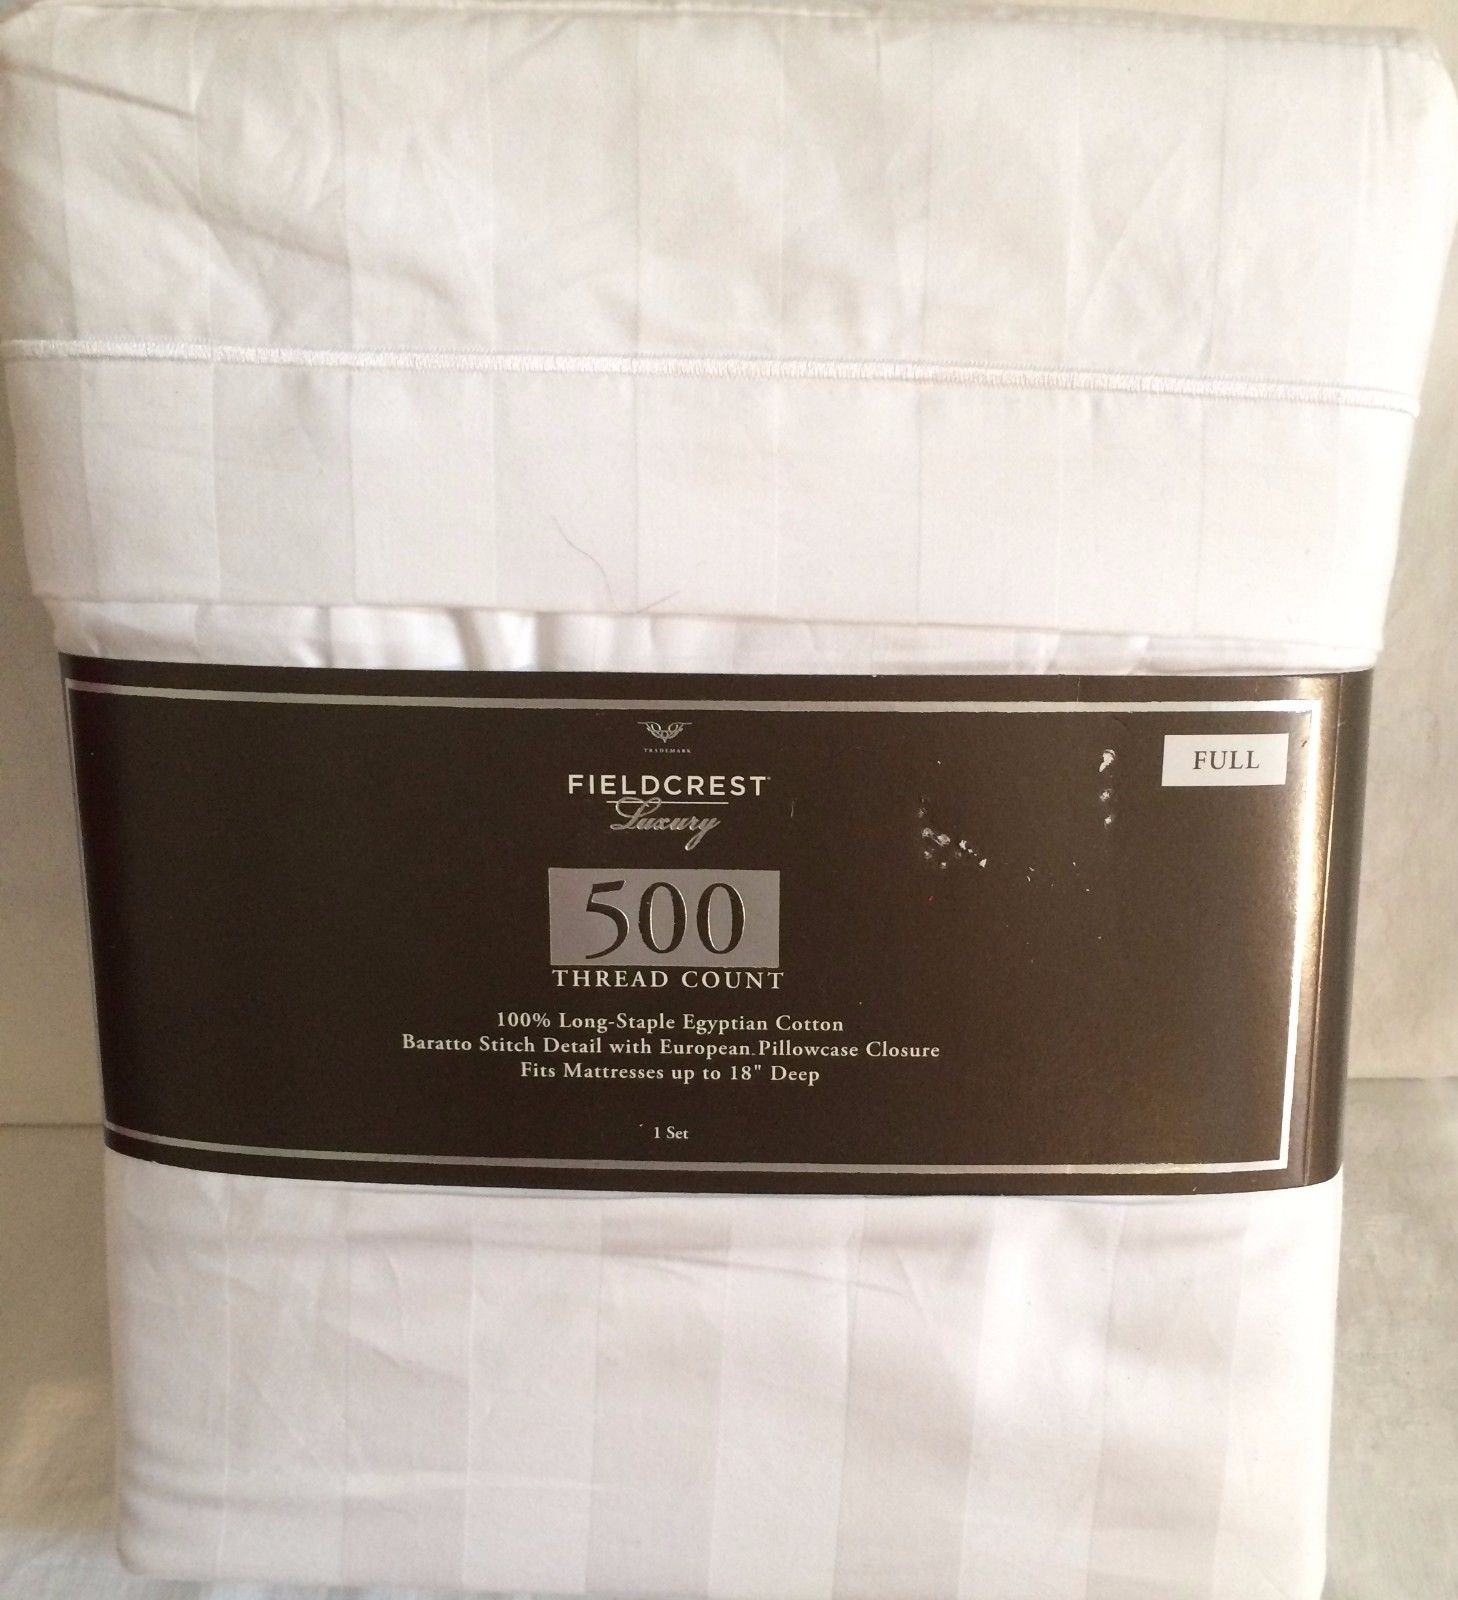 Field Crest Sheets | 300 Count Egyptian Cotton Sheets | Fieldcrest Luxury Sheets